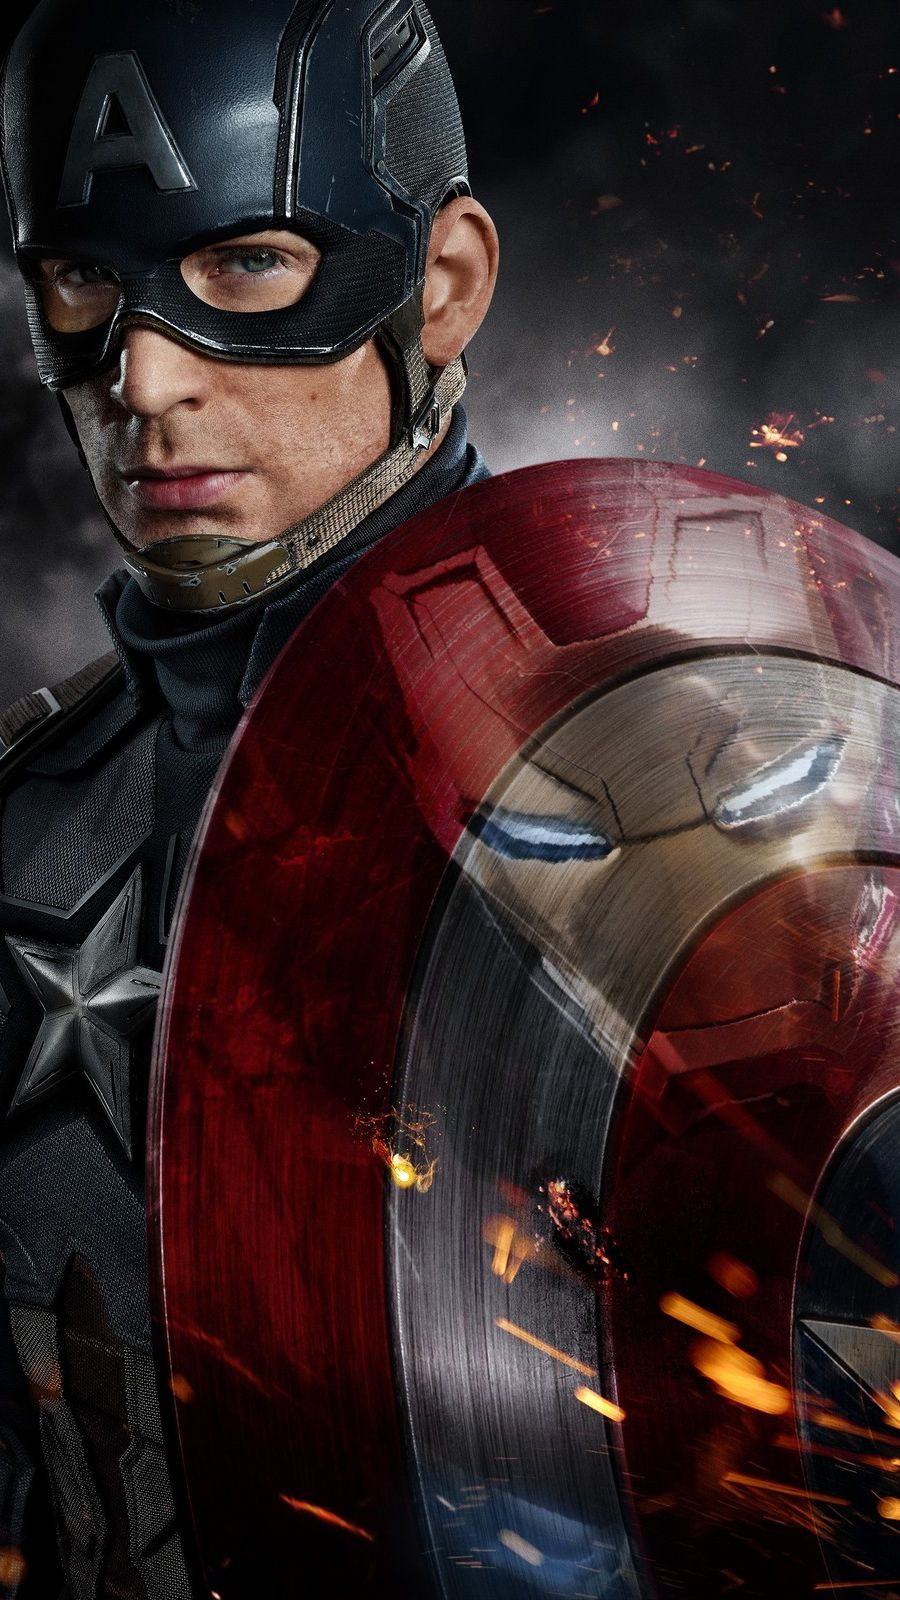 Captain America vs Iron Man Fight iPhone Wallpaper